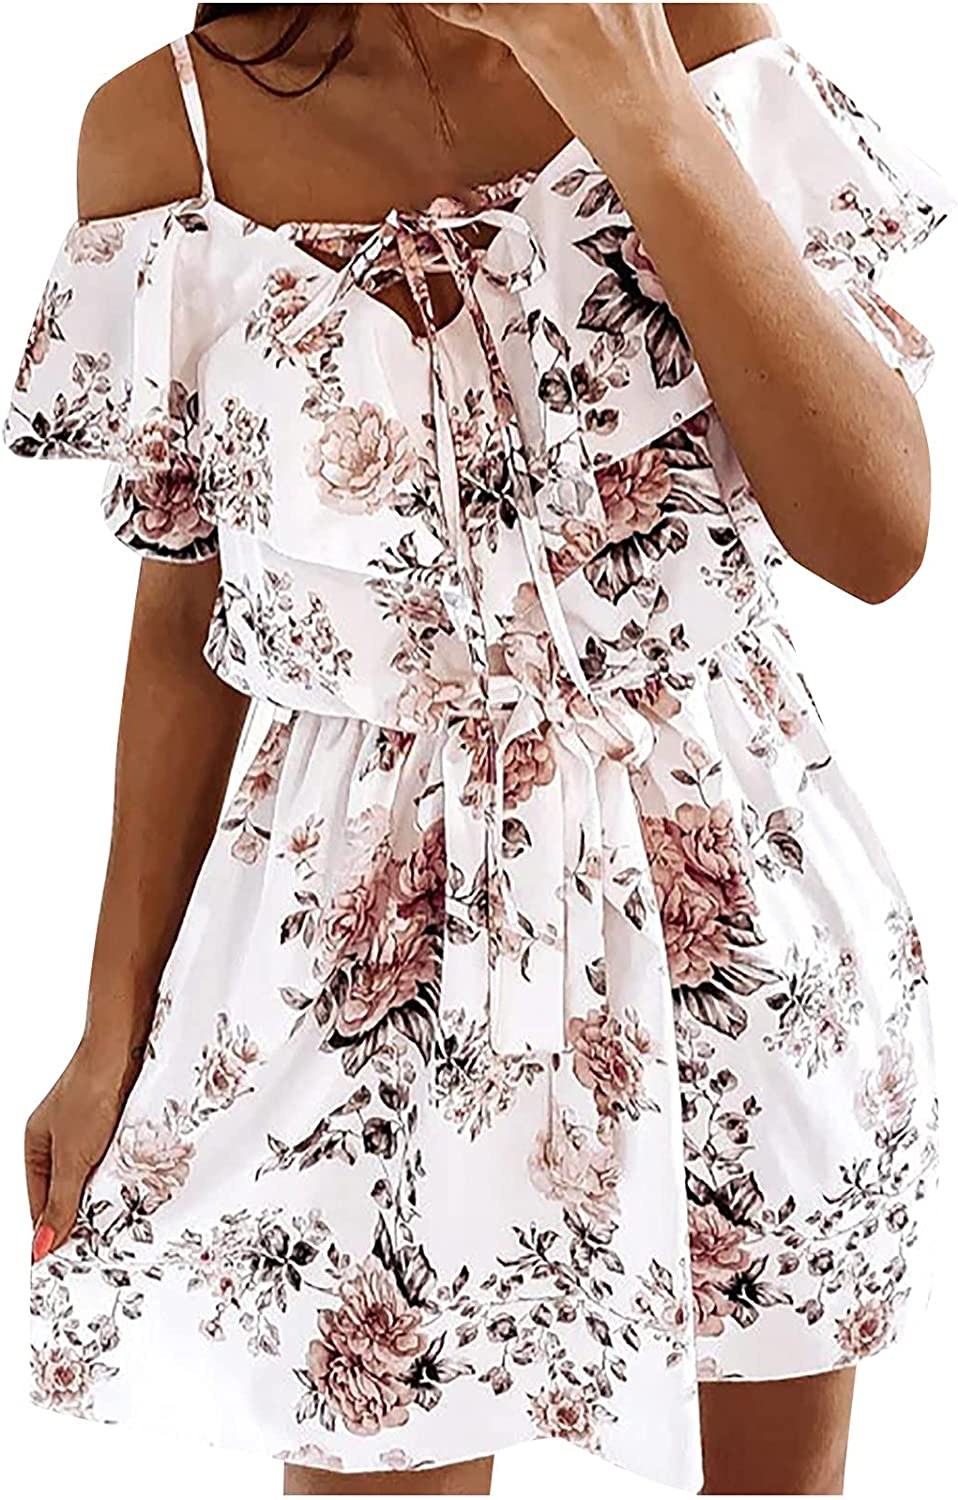 Womens Dresses for Summer Lace Up Cold Shoulder Floral Swing Short Dress Cute Beach Dresses That Hide Belly Fat